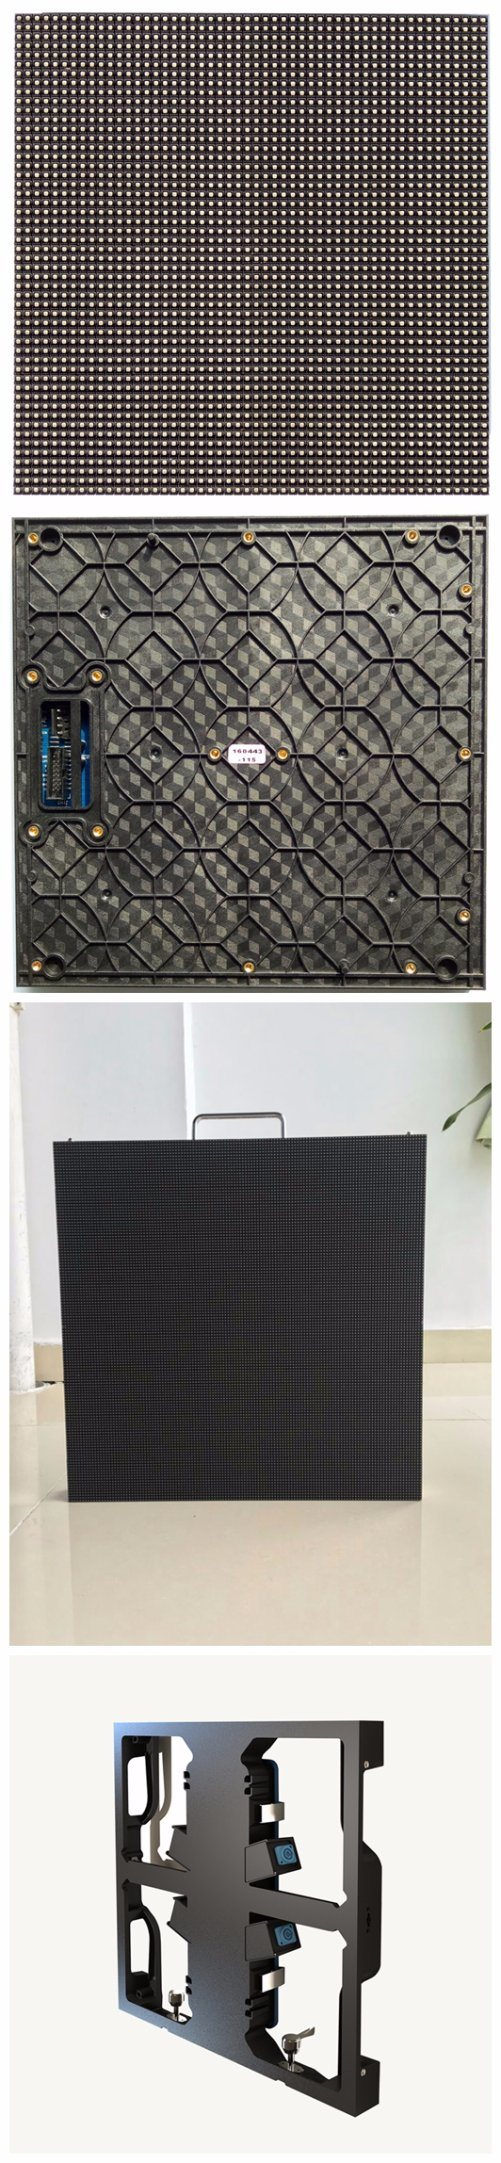 4.81mm Pitch Indoor Full Color LED Display 52x52 dot Module Resolution For Stage